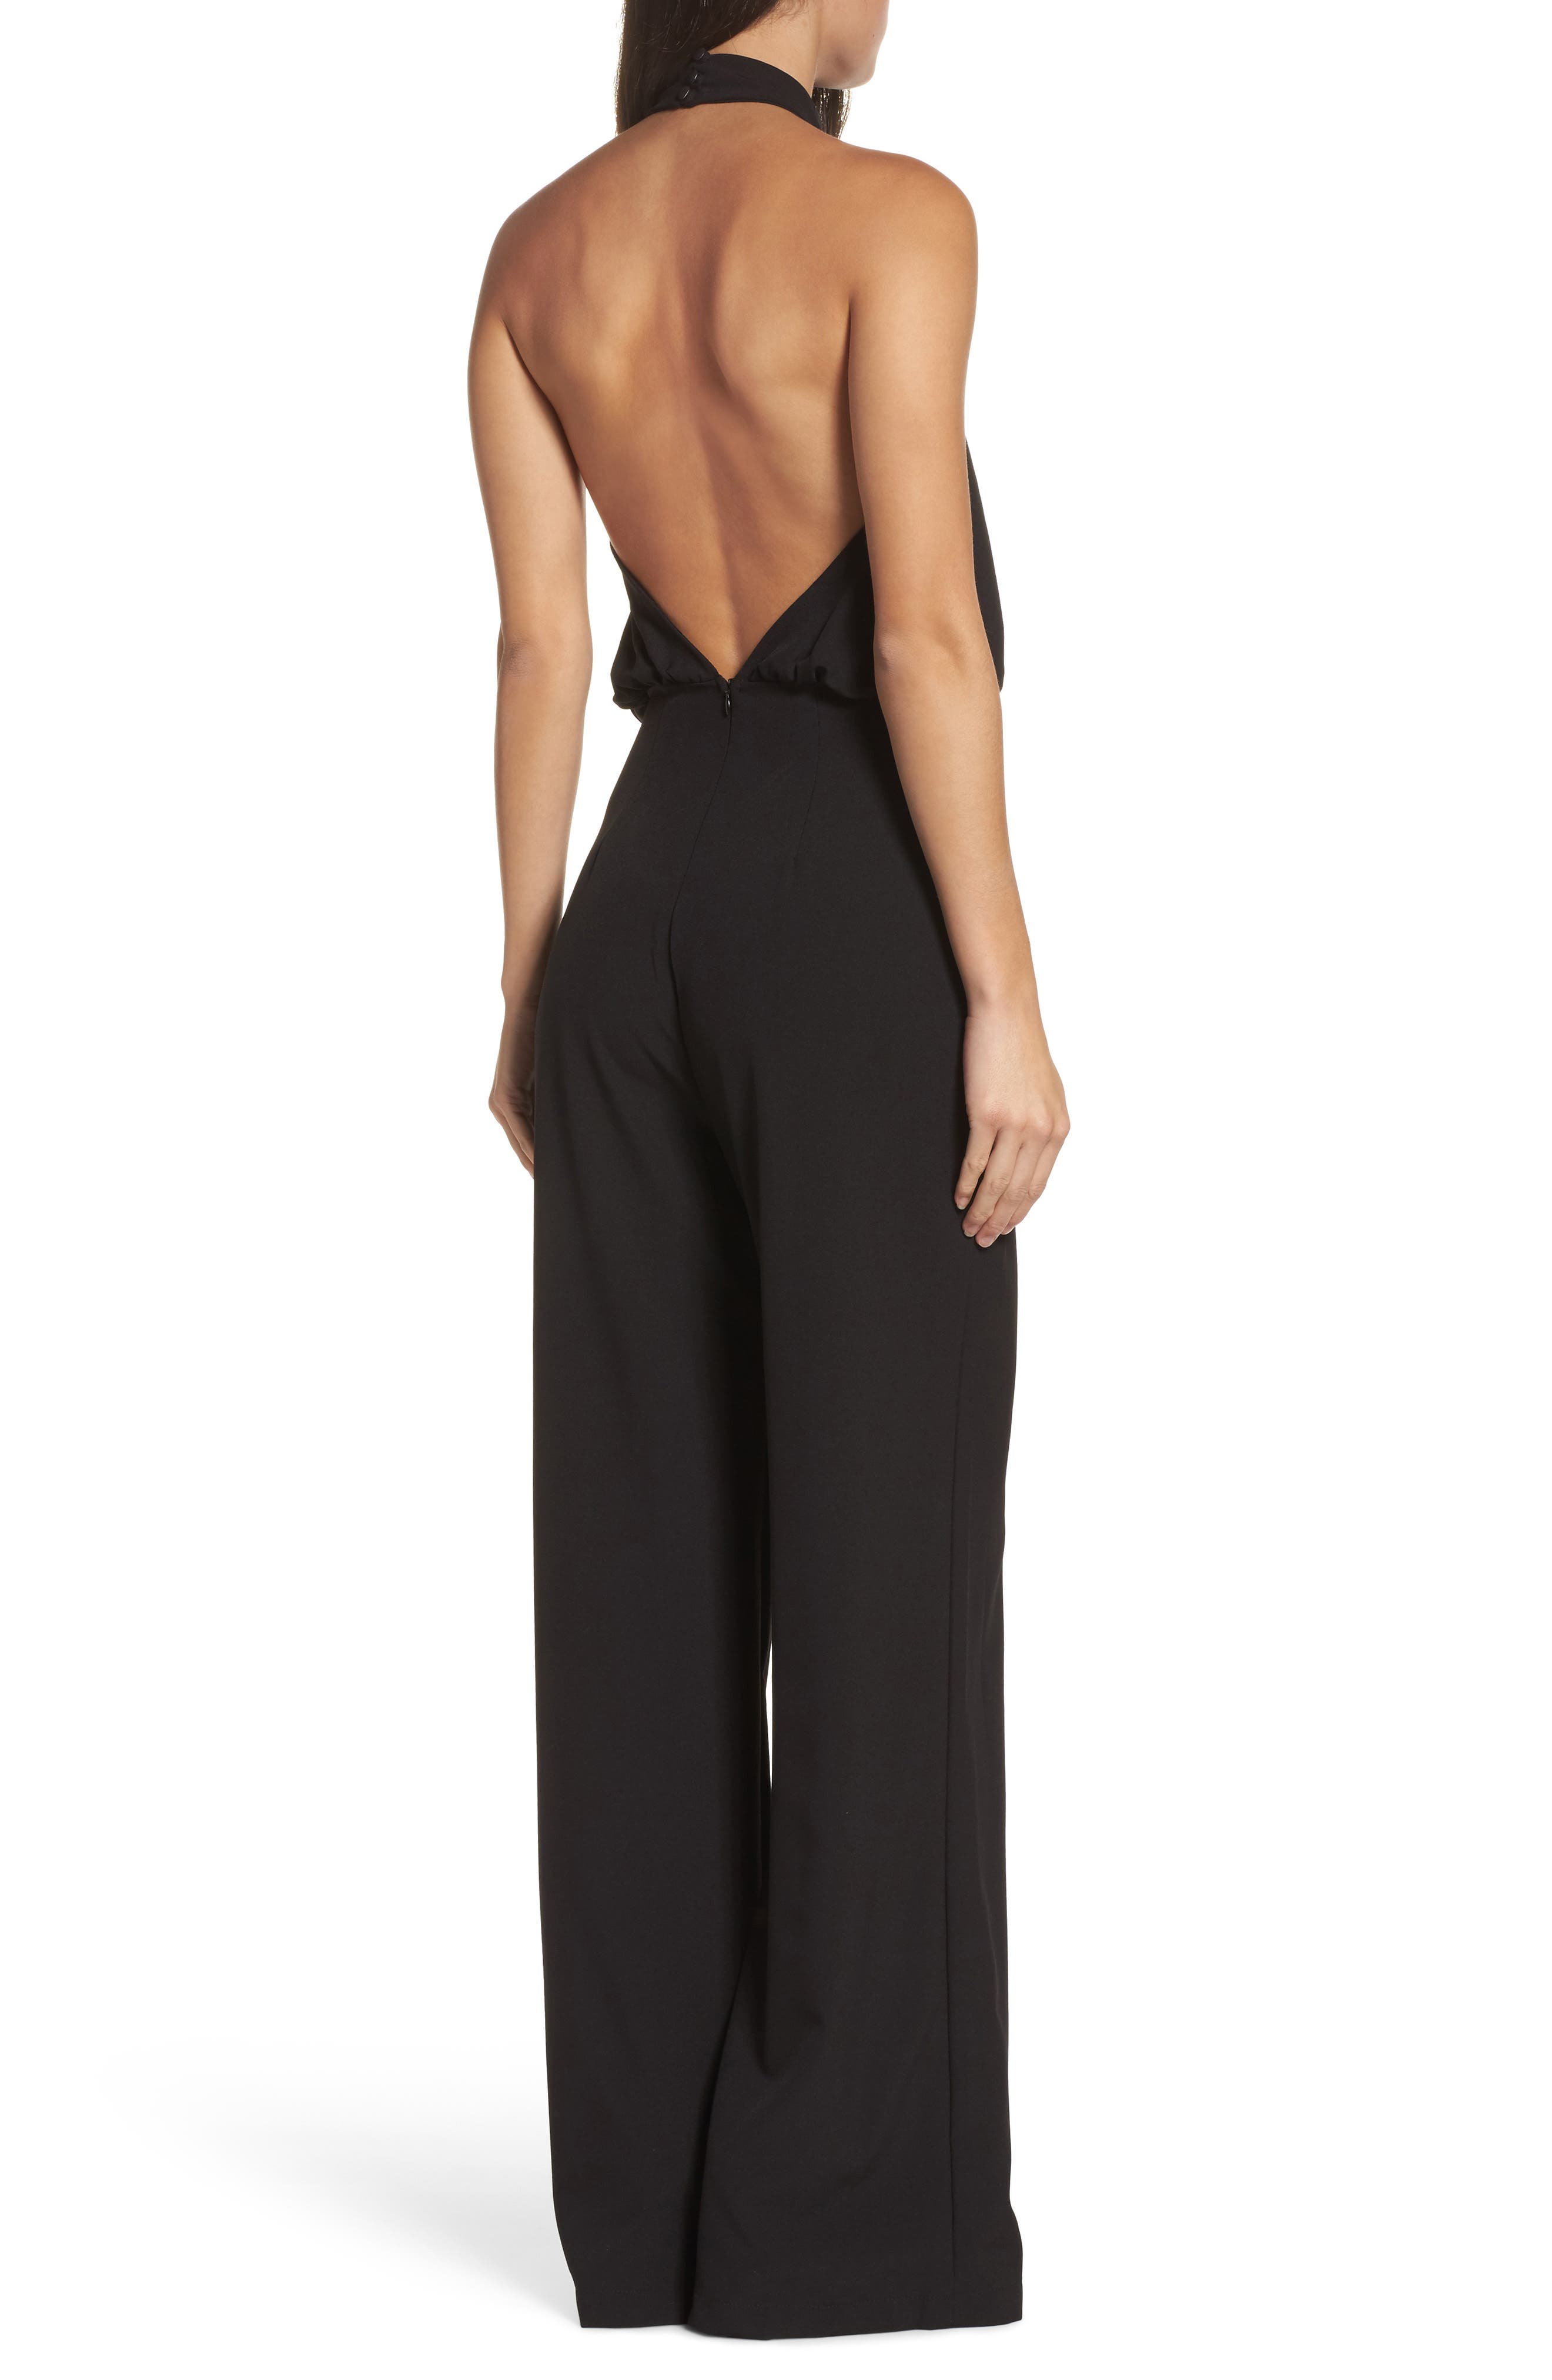 Moment for Life Halter Jumpsuit,                             Alternate thumbnail 2, color,                             BLACK